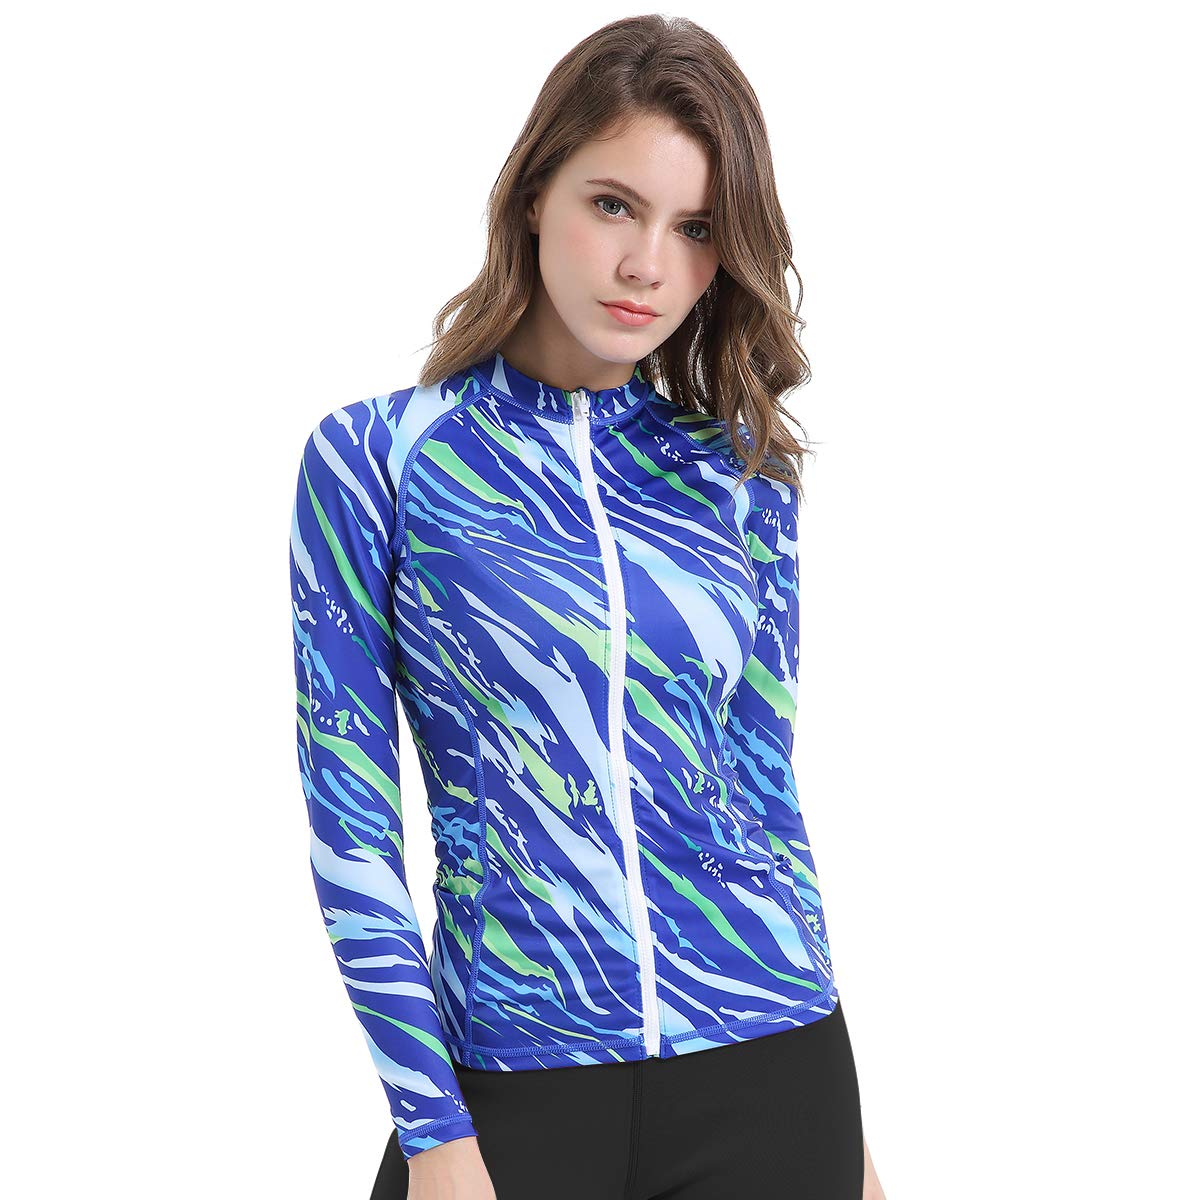 L&Sports Women Long Sleeve Rash Guard Shirt Printed Surfing Shirt Wetsuit Swimsuit Top Full Zip Front UPF UV Sun Protection (Blue, 3XL) by L&Sports